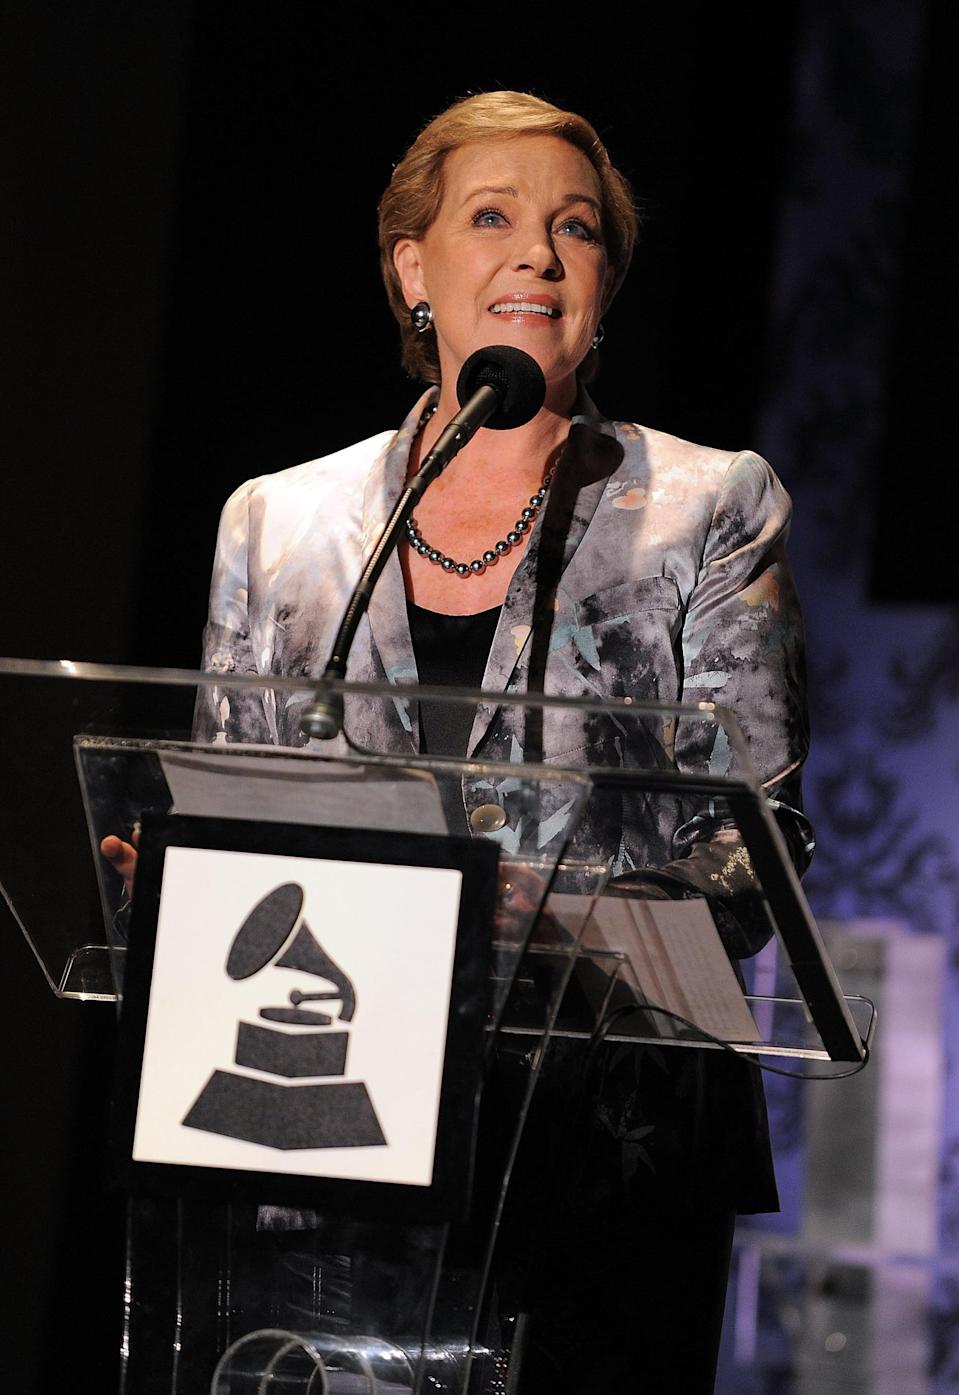 """<ul> <li><strong>Has:</strong> An Oscar for <strong>Mary Poppins</strong>, two Emmys for <strong>The Julie Andrews Hour</strong> and <strong>Broadway: The American Musical</strong>, and two 2011 Grammys - one for """"Julie Andrews's Collection of Poems, Songs, and Lullabies"""" and a Lifetime Achievement Award </li> <li><strong>Needs:</strong> A Tony</li> </ul>"""